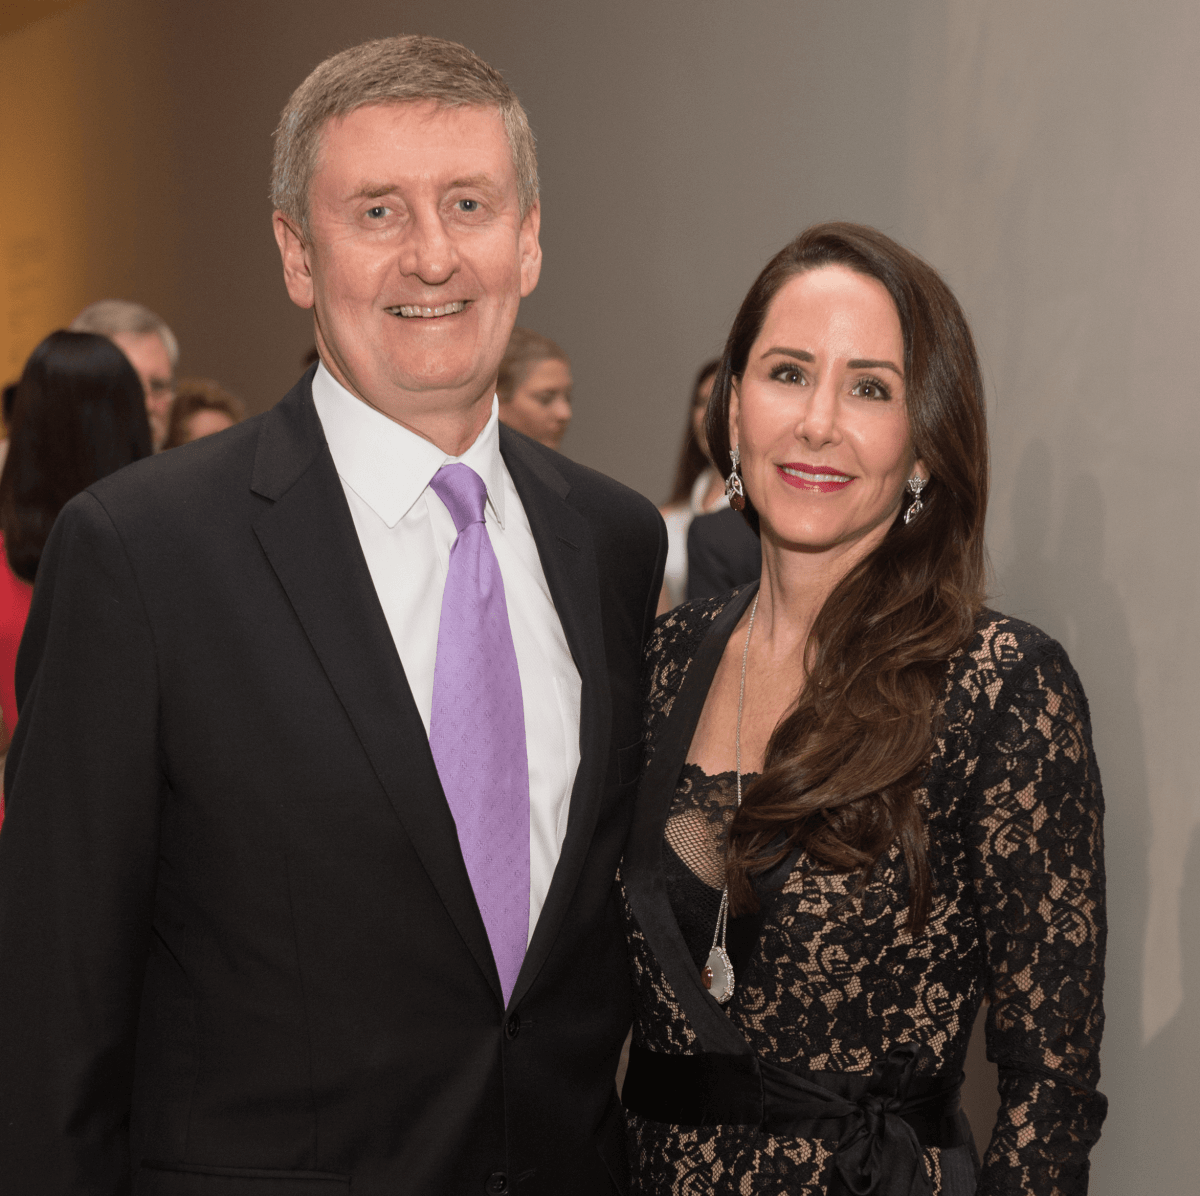 Degas Opening Dinner: Tom and Liz Glanville